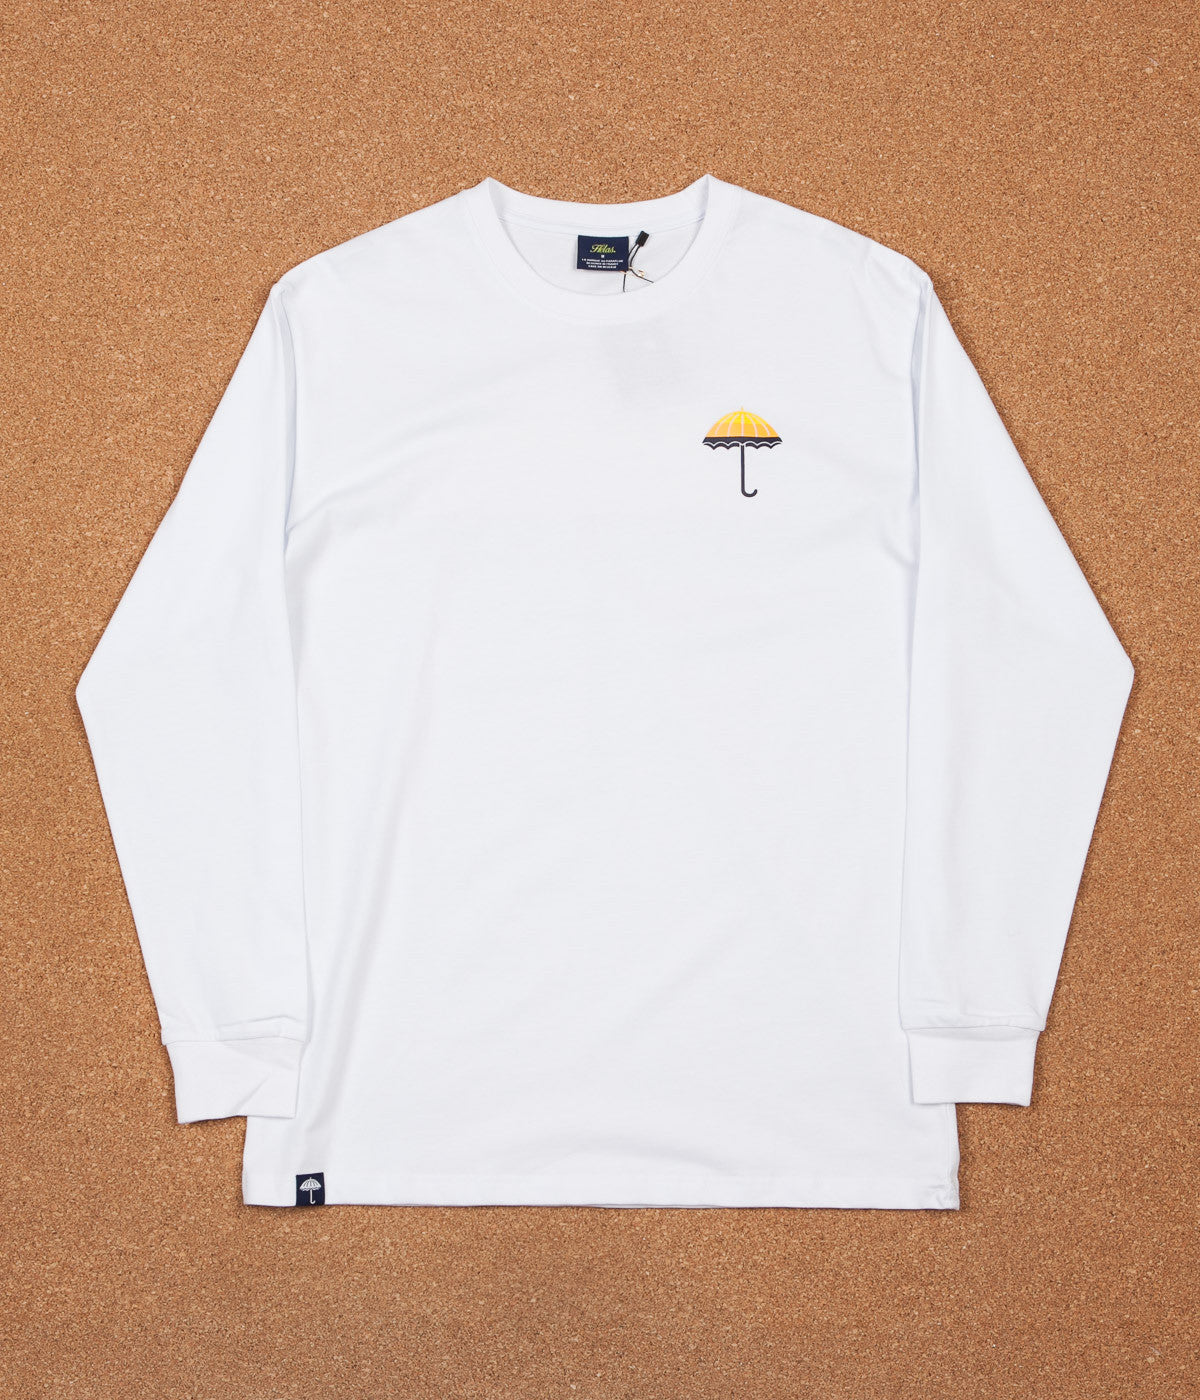 Helas Umbrella Long Sleeve T-Shirt - White / Yellow / Orange / Navy